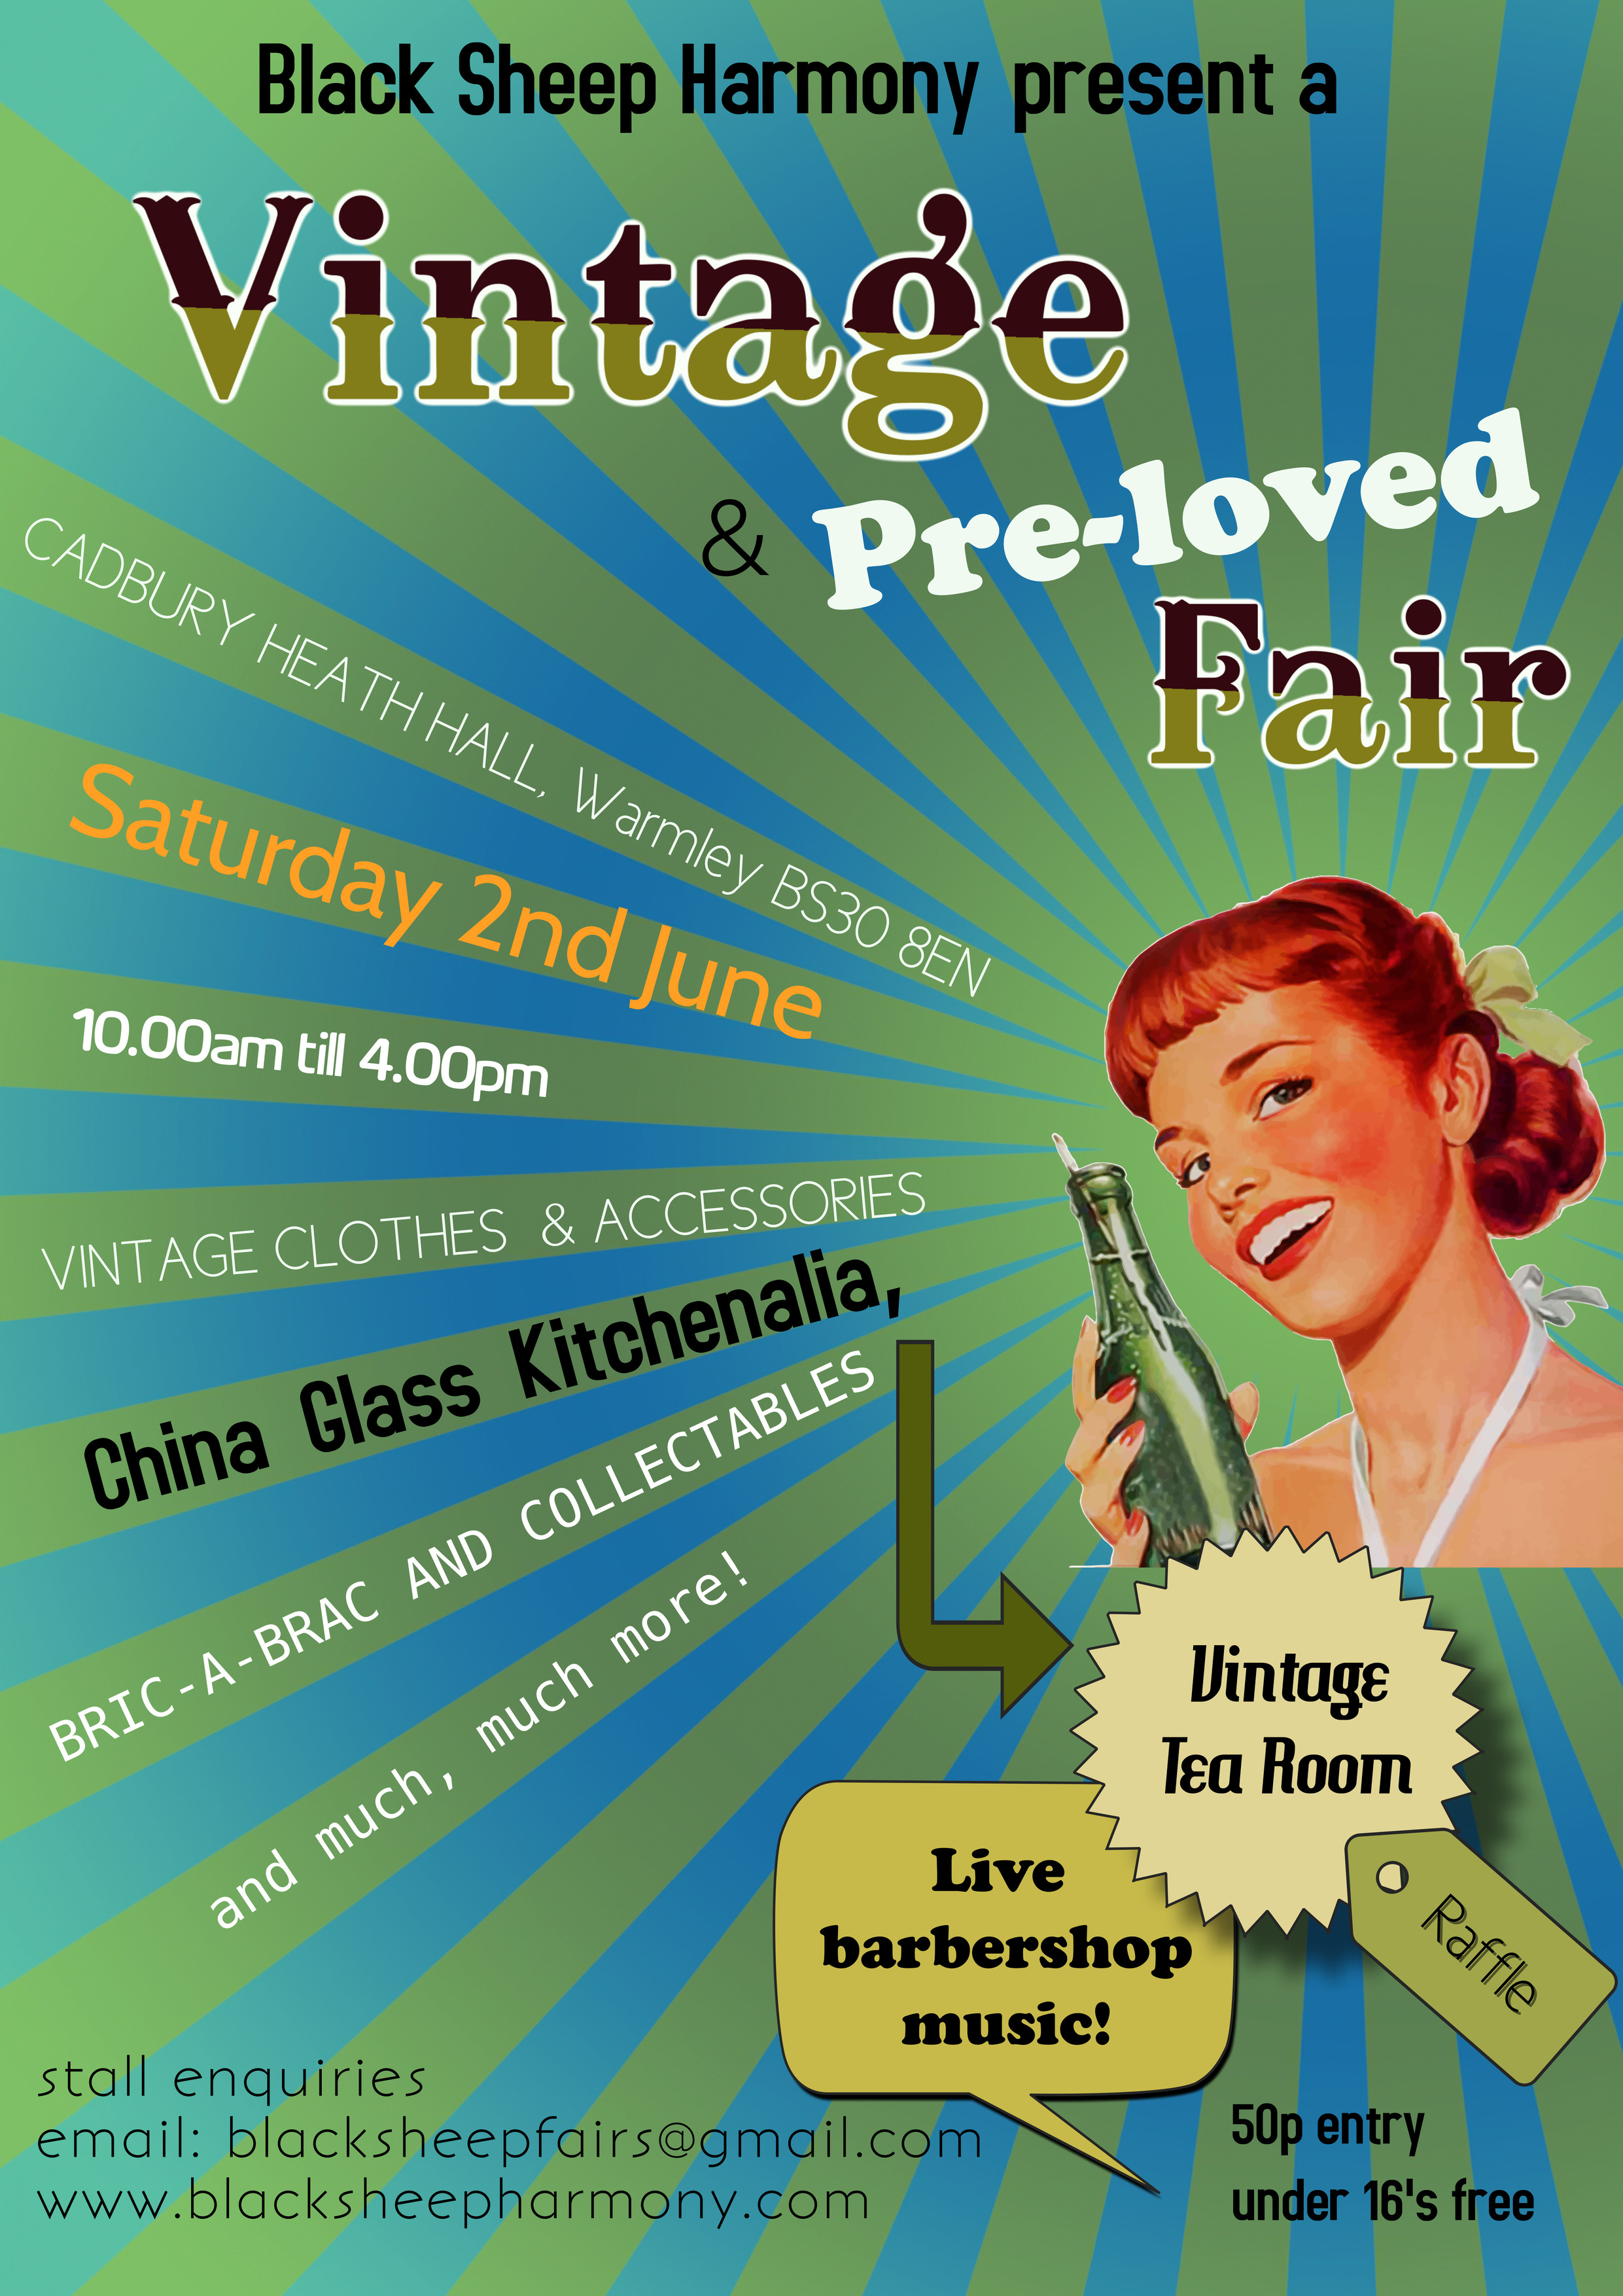 Vintage and Pre-loved Fair